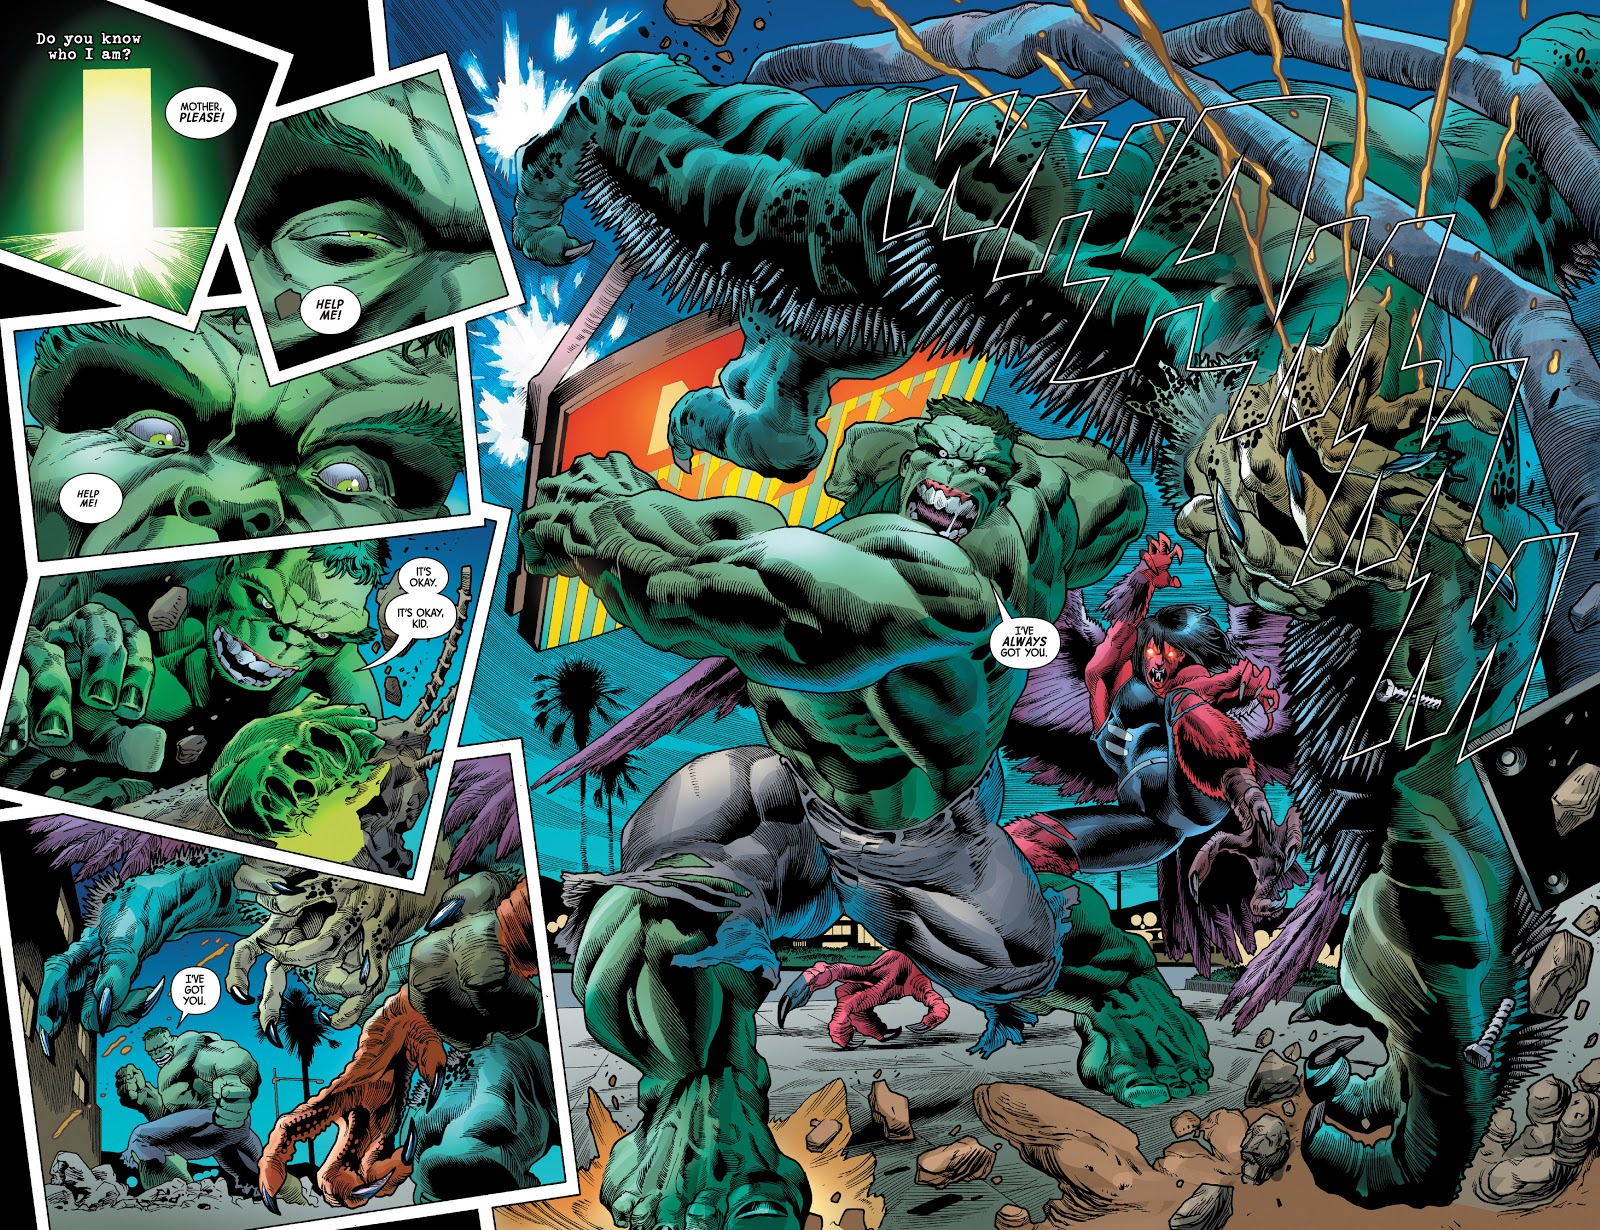 The Hulk And The Harpy VS The Abomination